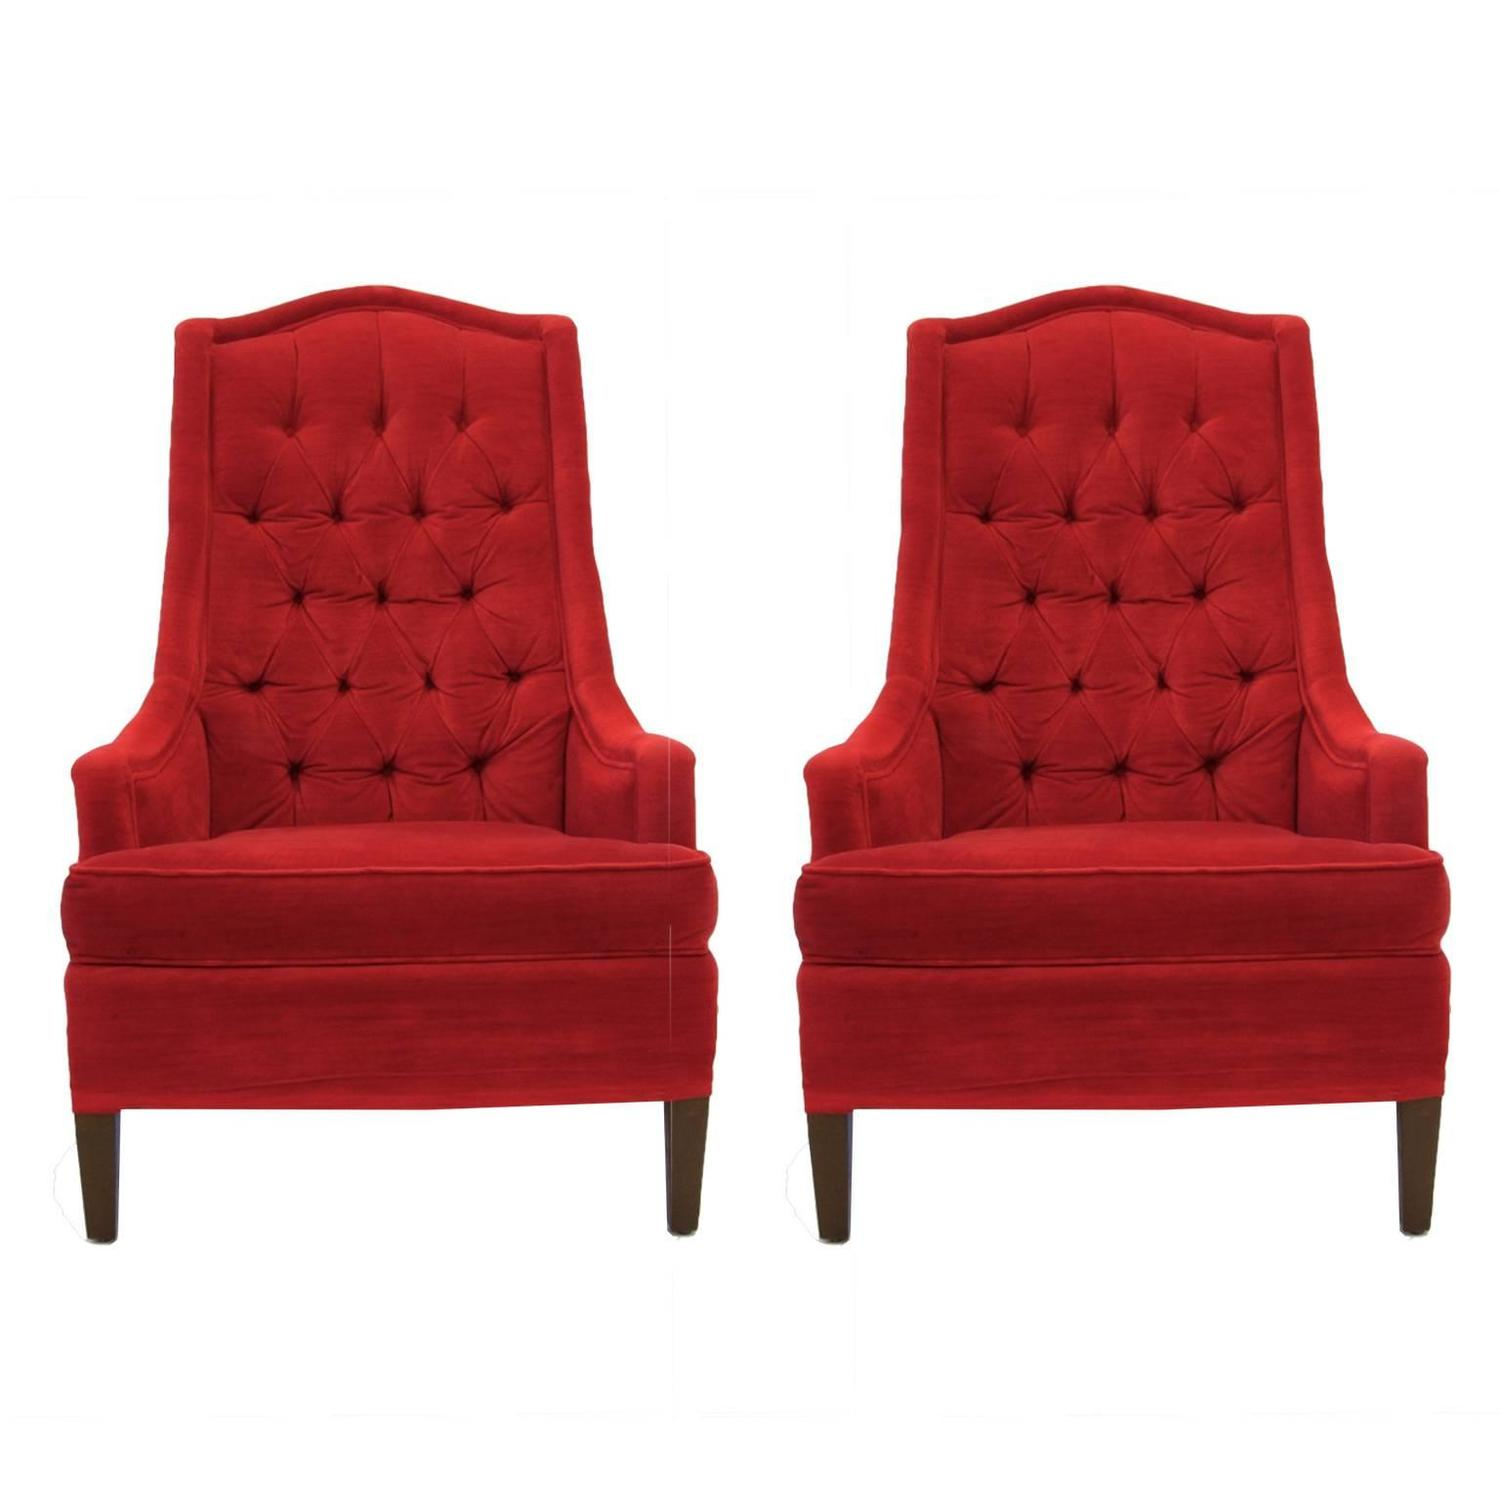 Excellent Pair of Tufted Red Velvet Classic Regency Arm or Club